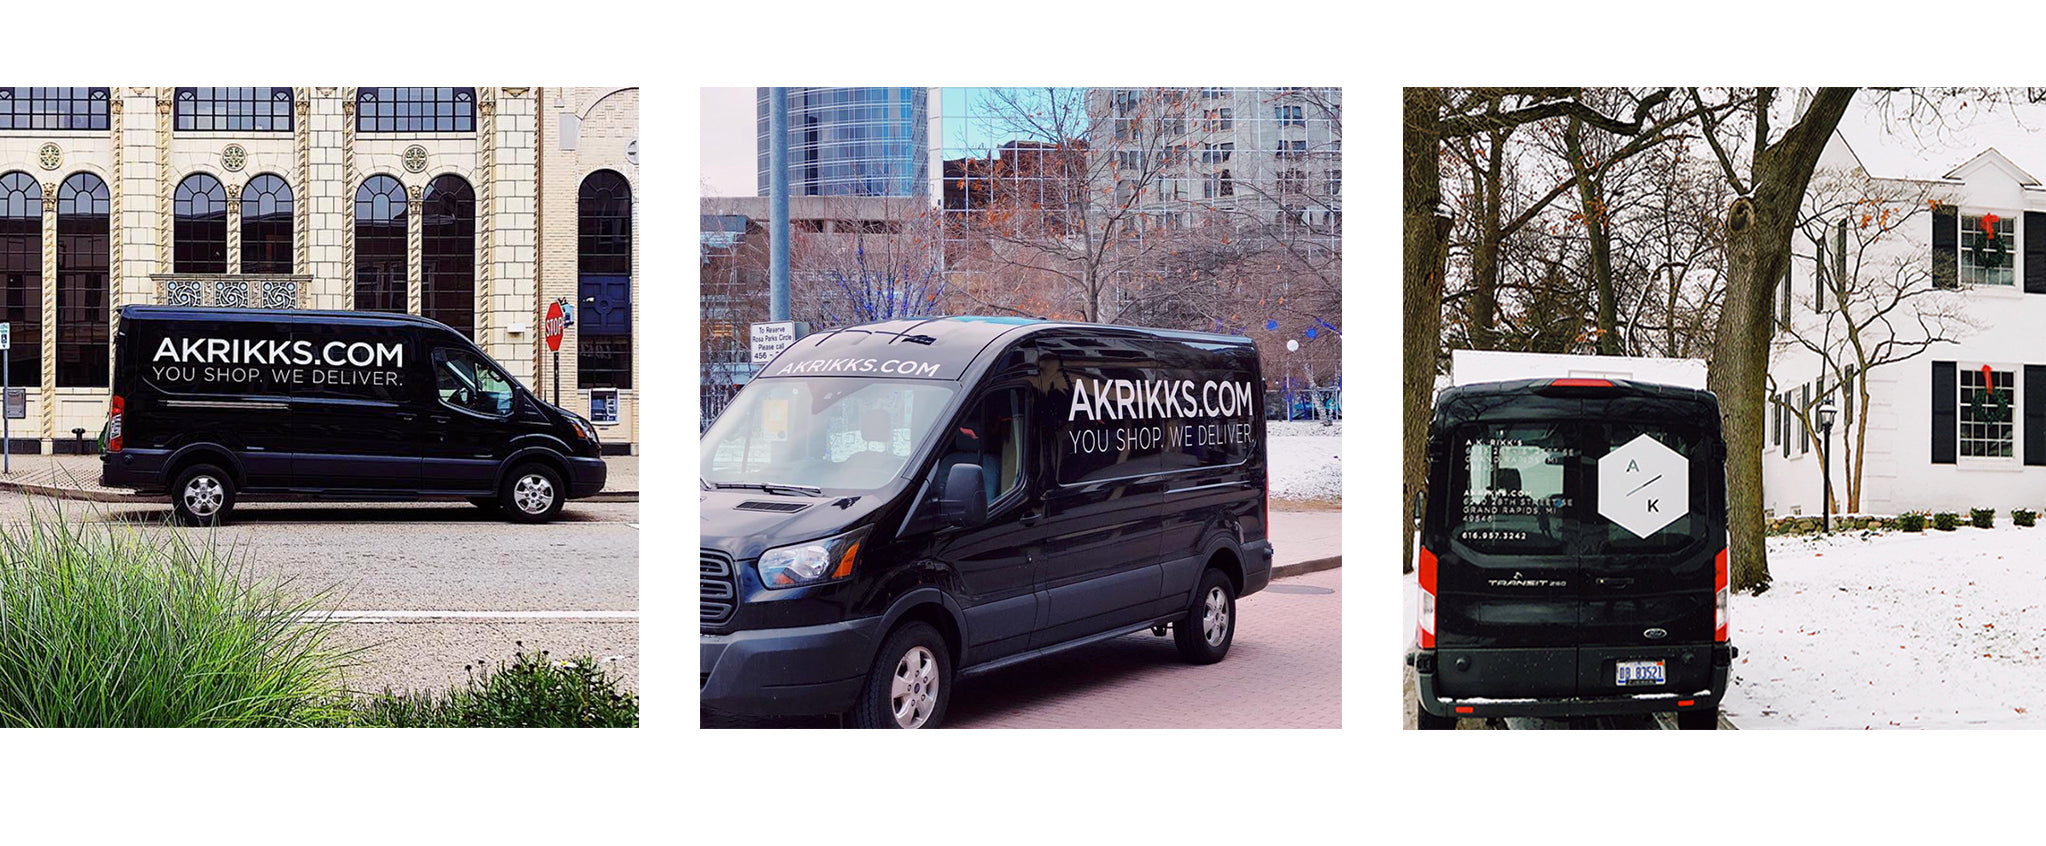 A.K. Rikk's Local Delivery Van: You Shop, We Deliver in Grand Rapids, Michigan